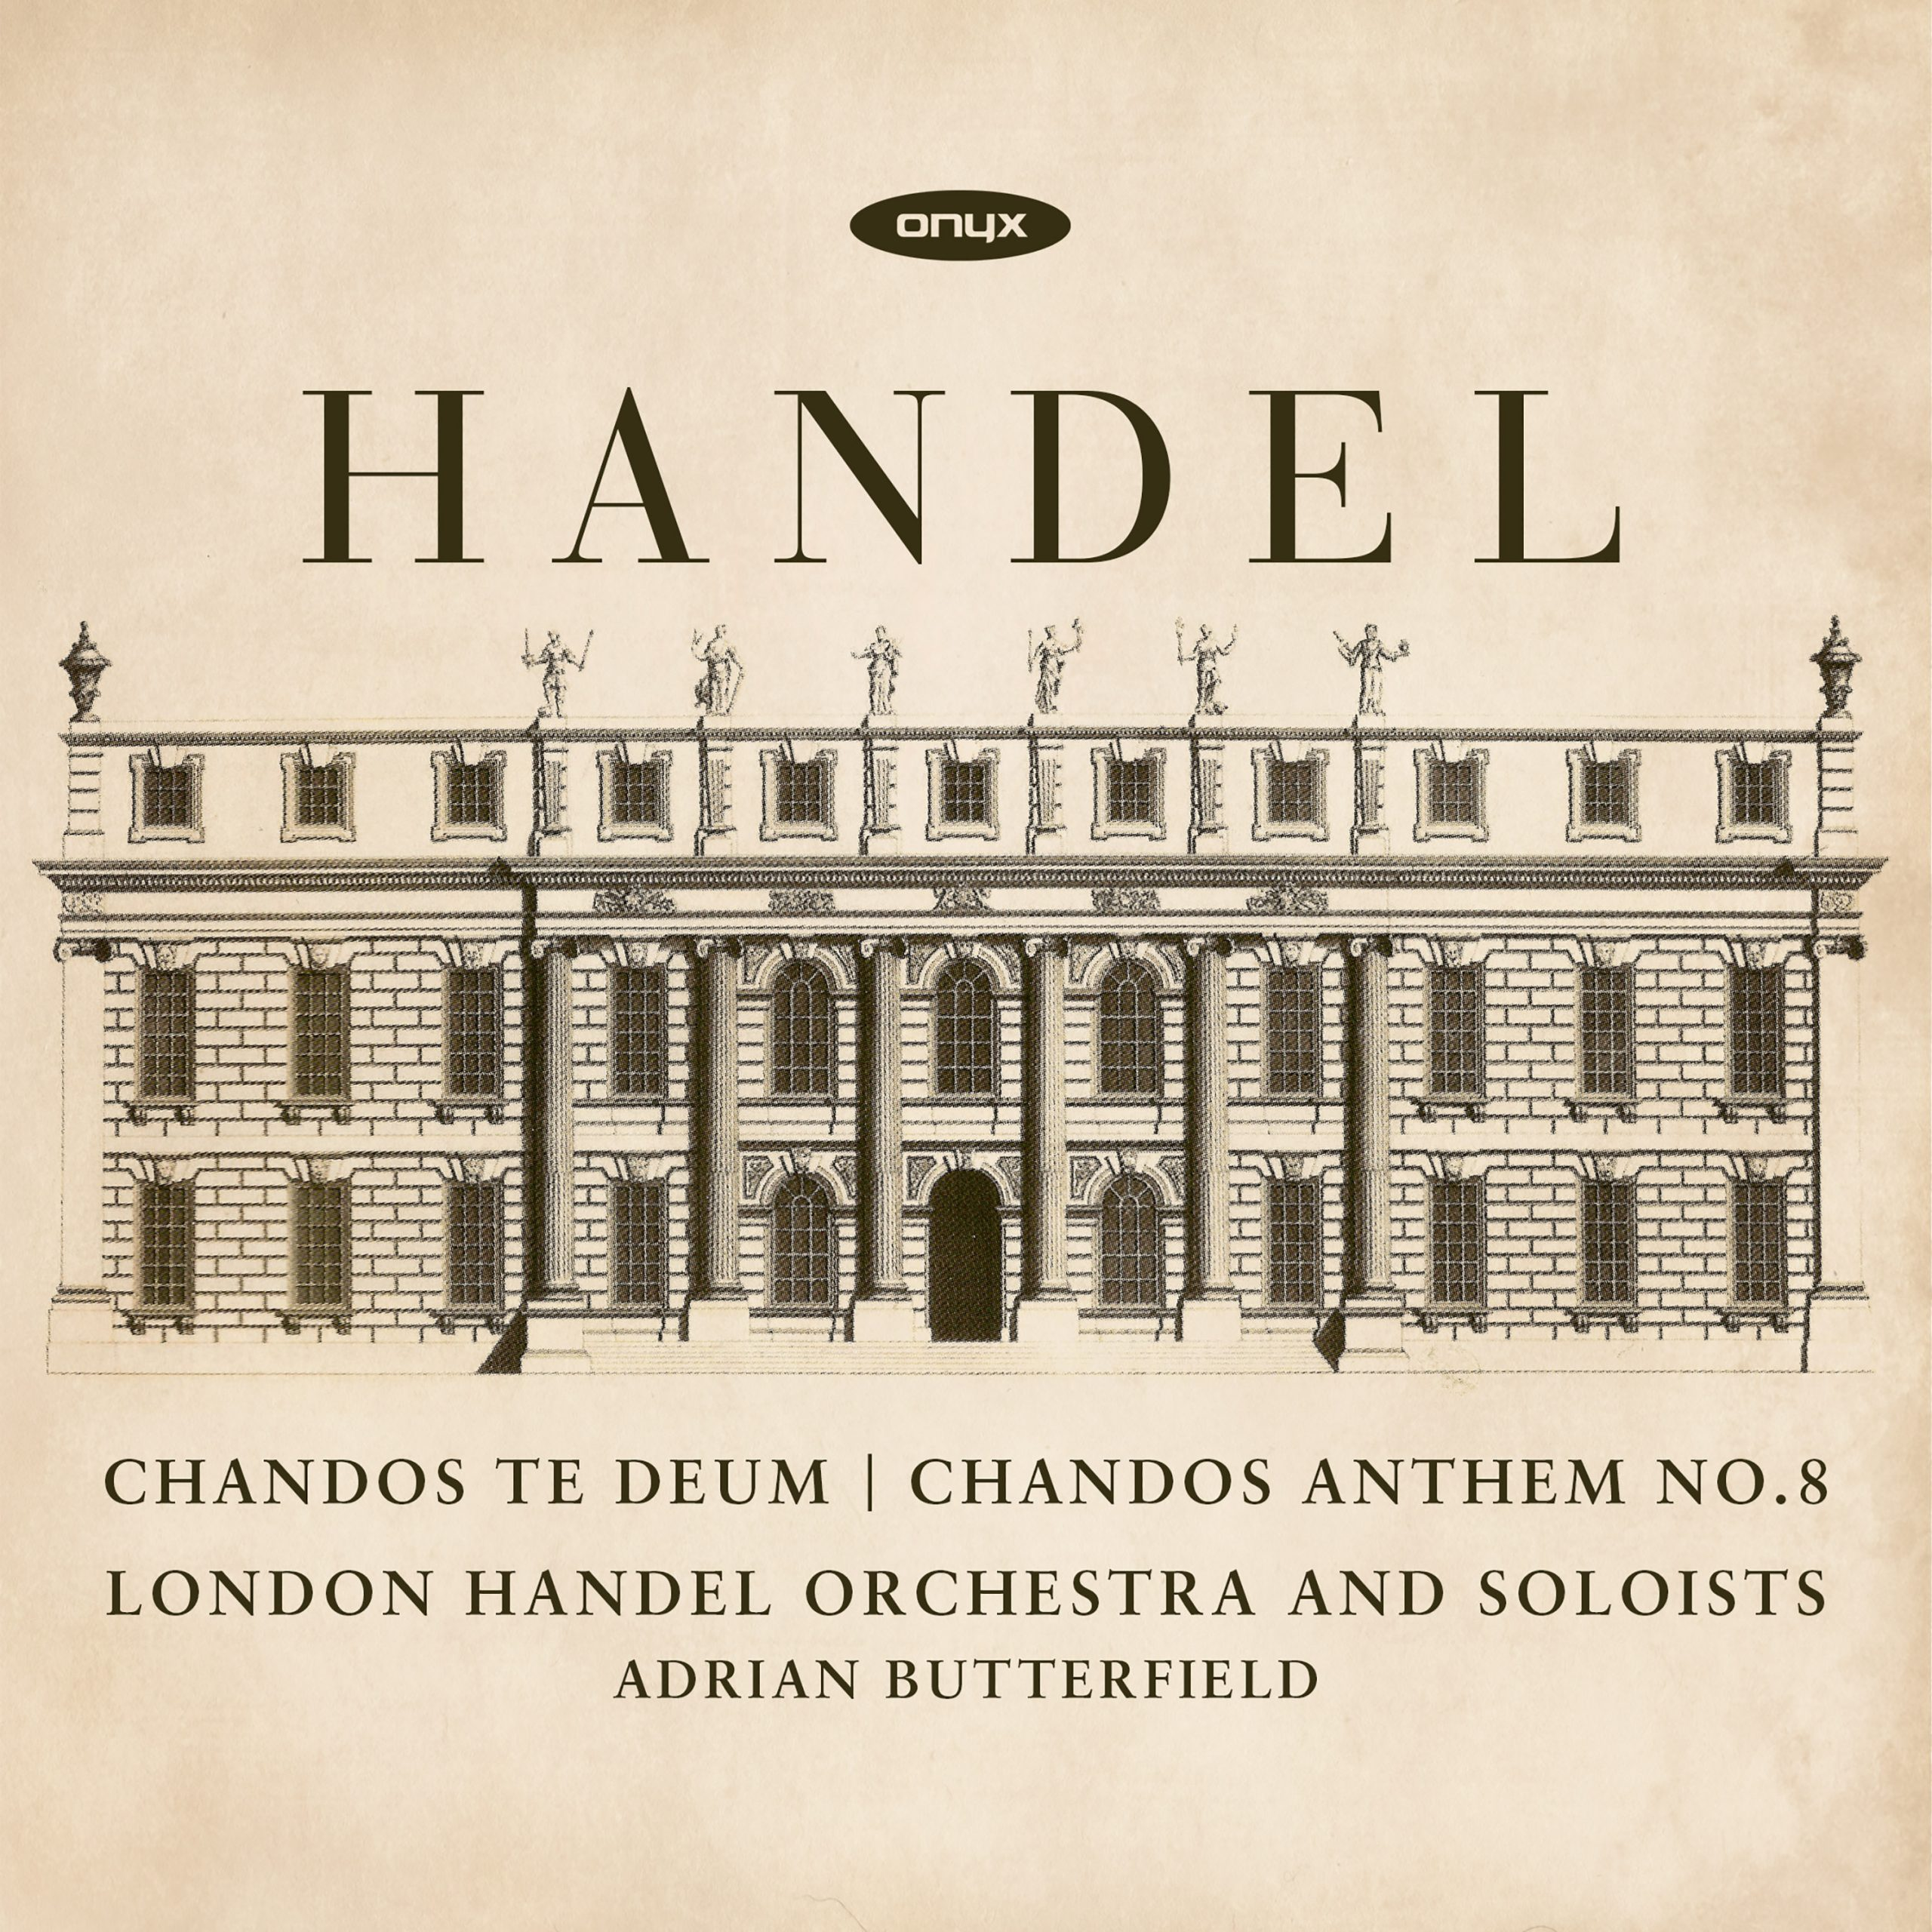 455London Handel Orchestra & Soloists